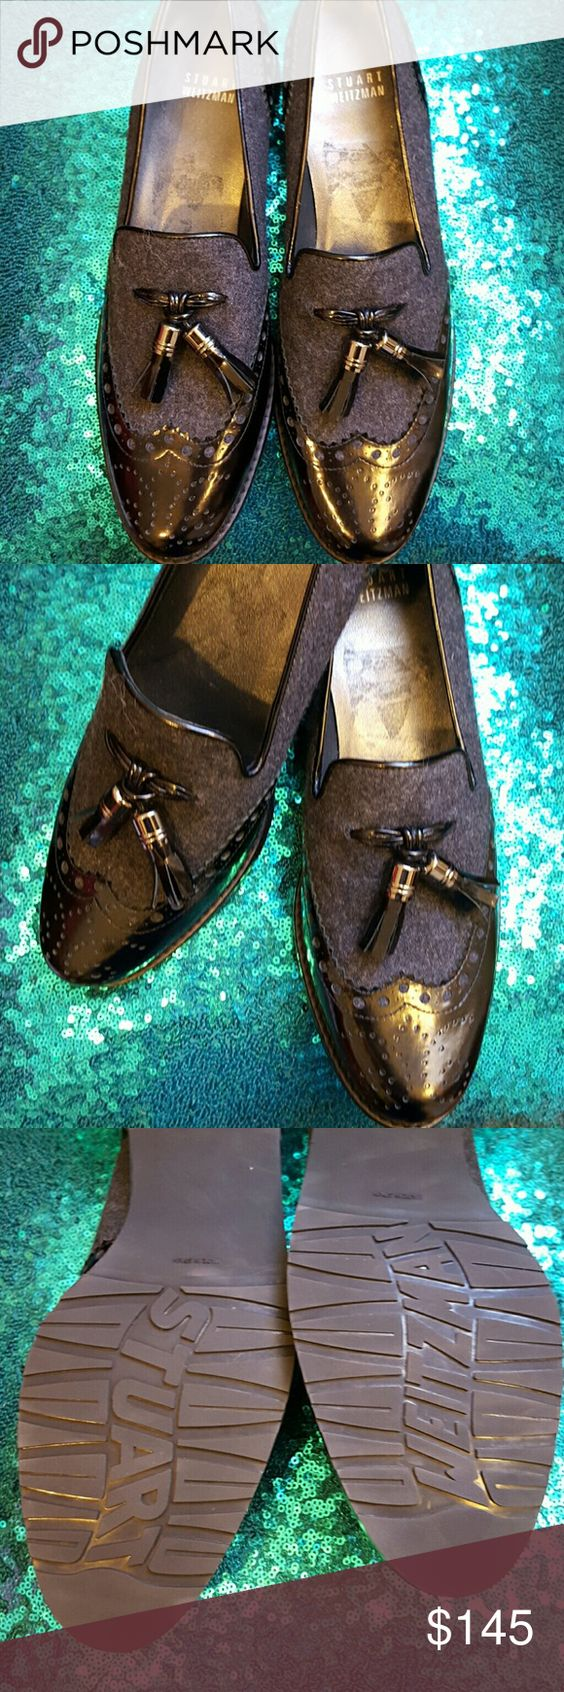 Stuart Weitzman Shoes size 8 m Used only once Stuart Weitzman shoes Stuart Weitzman Shoes Flats & Loafers